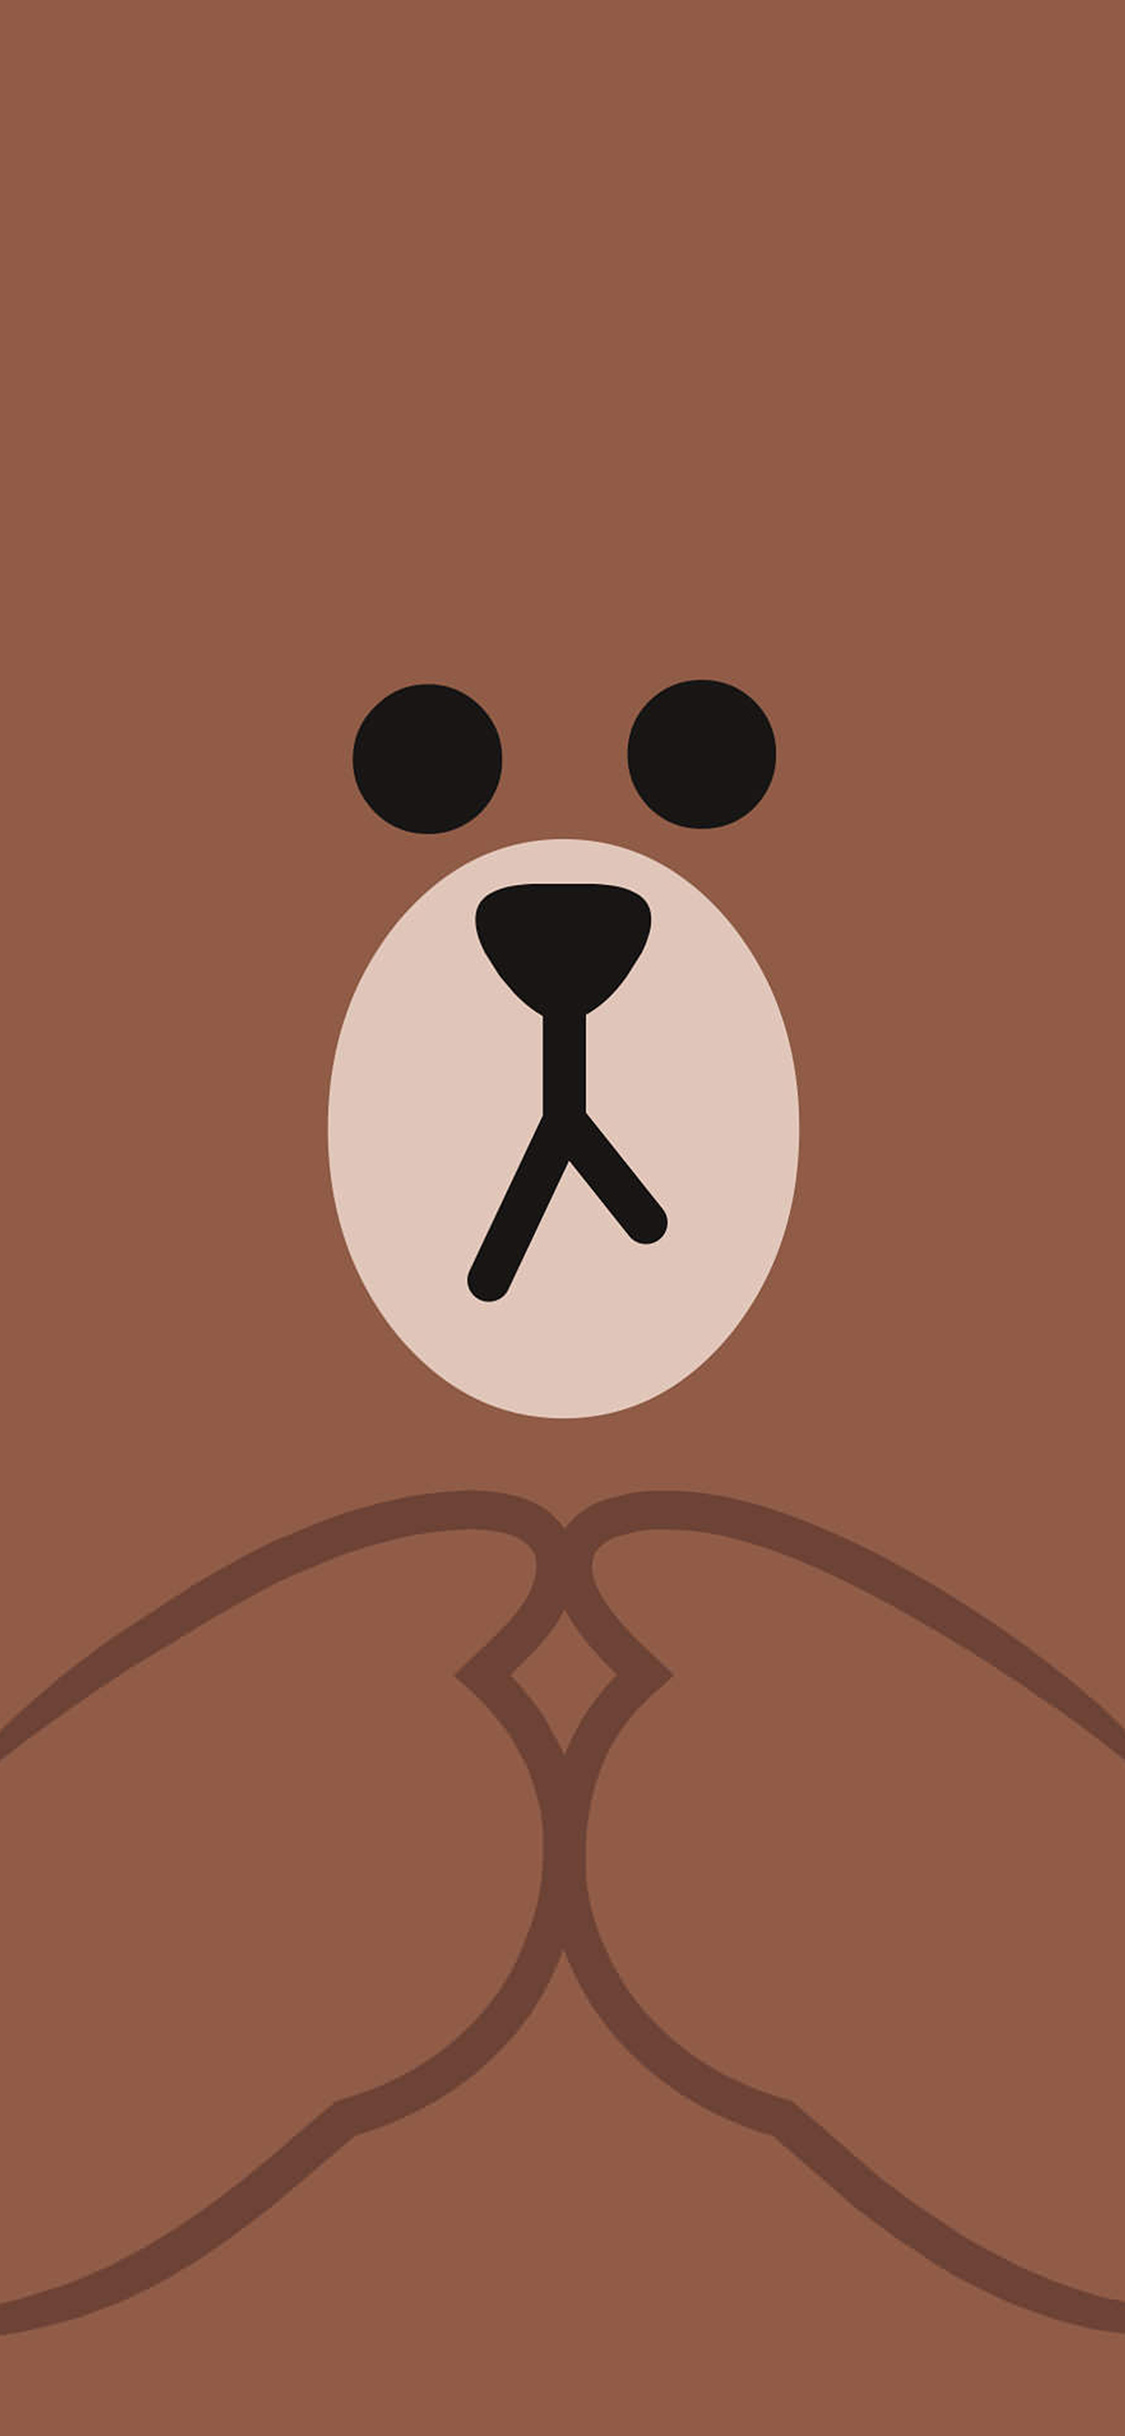 iPhoneXpapers.com-Apple-iPhone-wallpaper-bb60-kakao-charactor-cute-brown-illustration-art